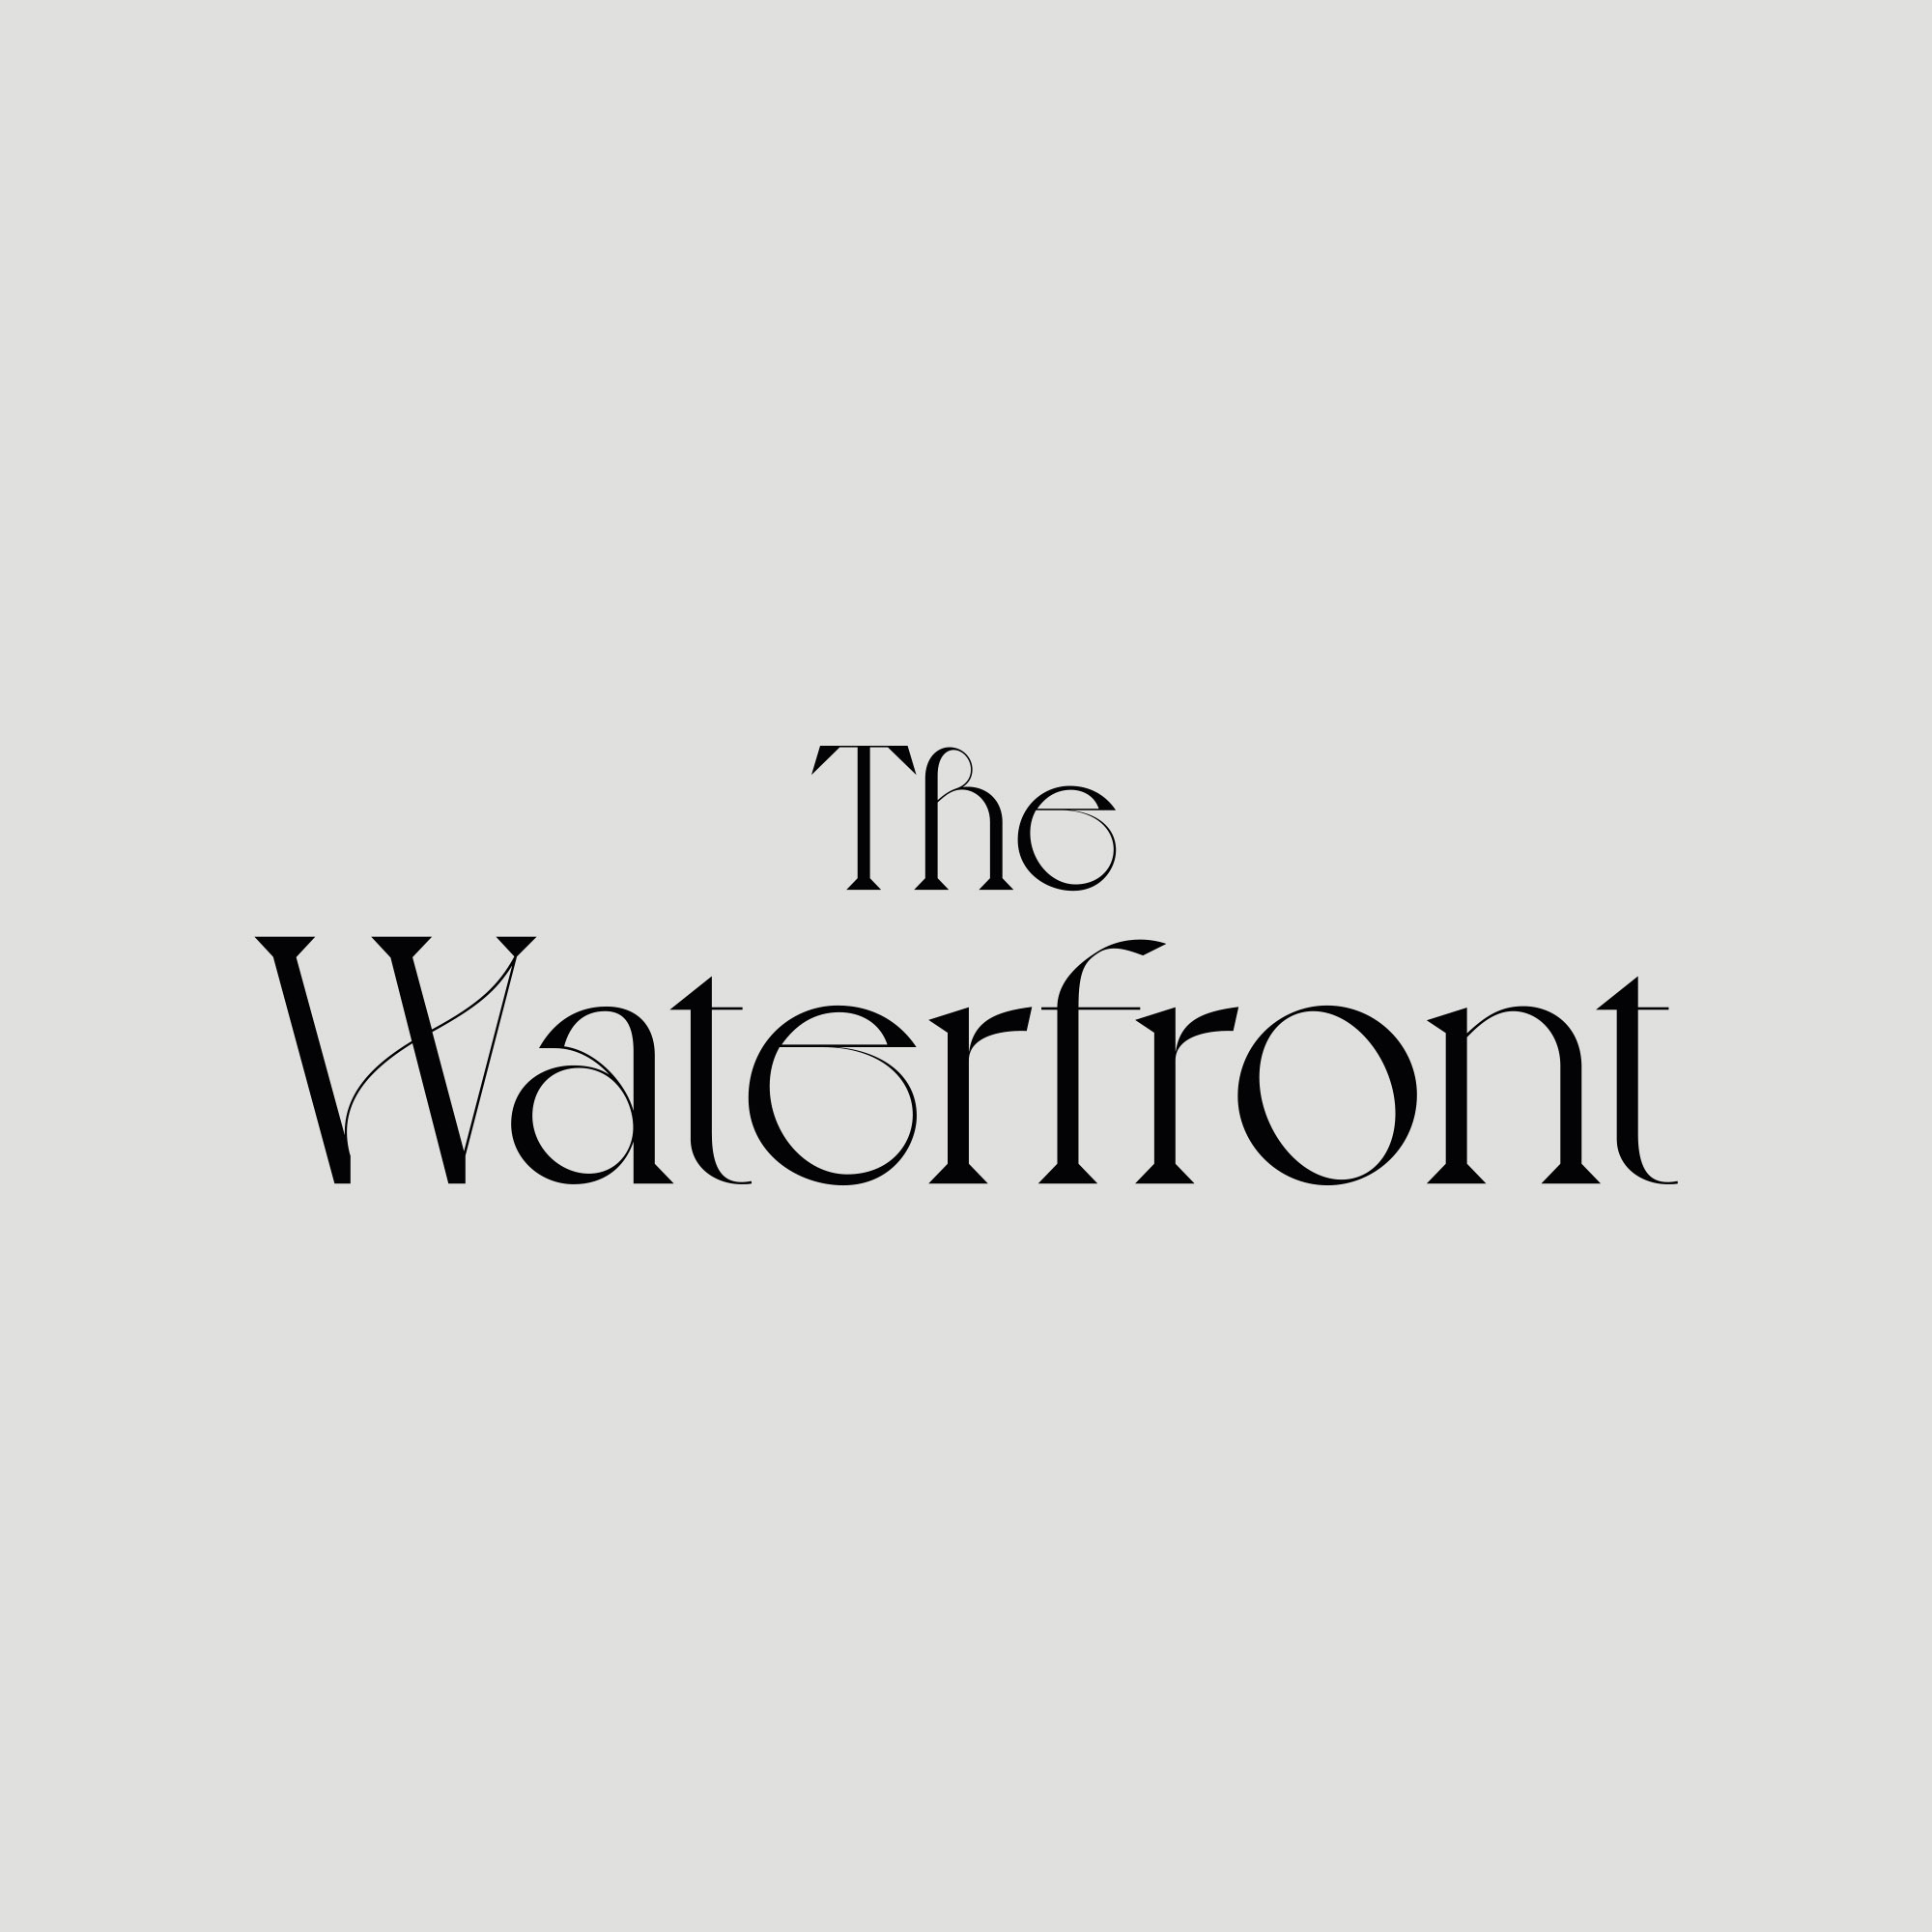 Brand Identity for The Waterfront, a High-End Champagne Bar Based in North Wales